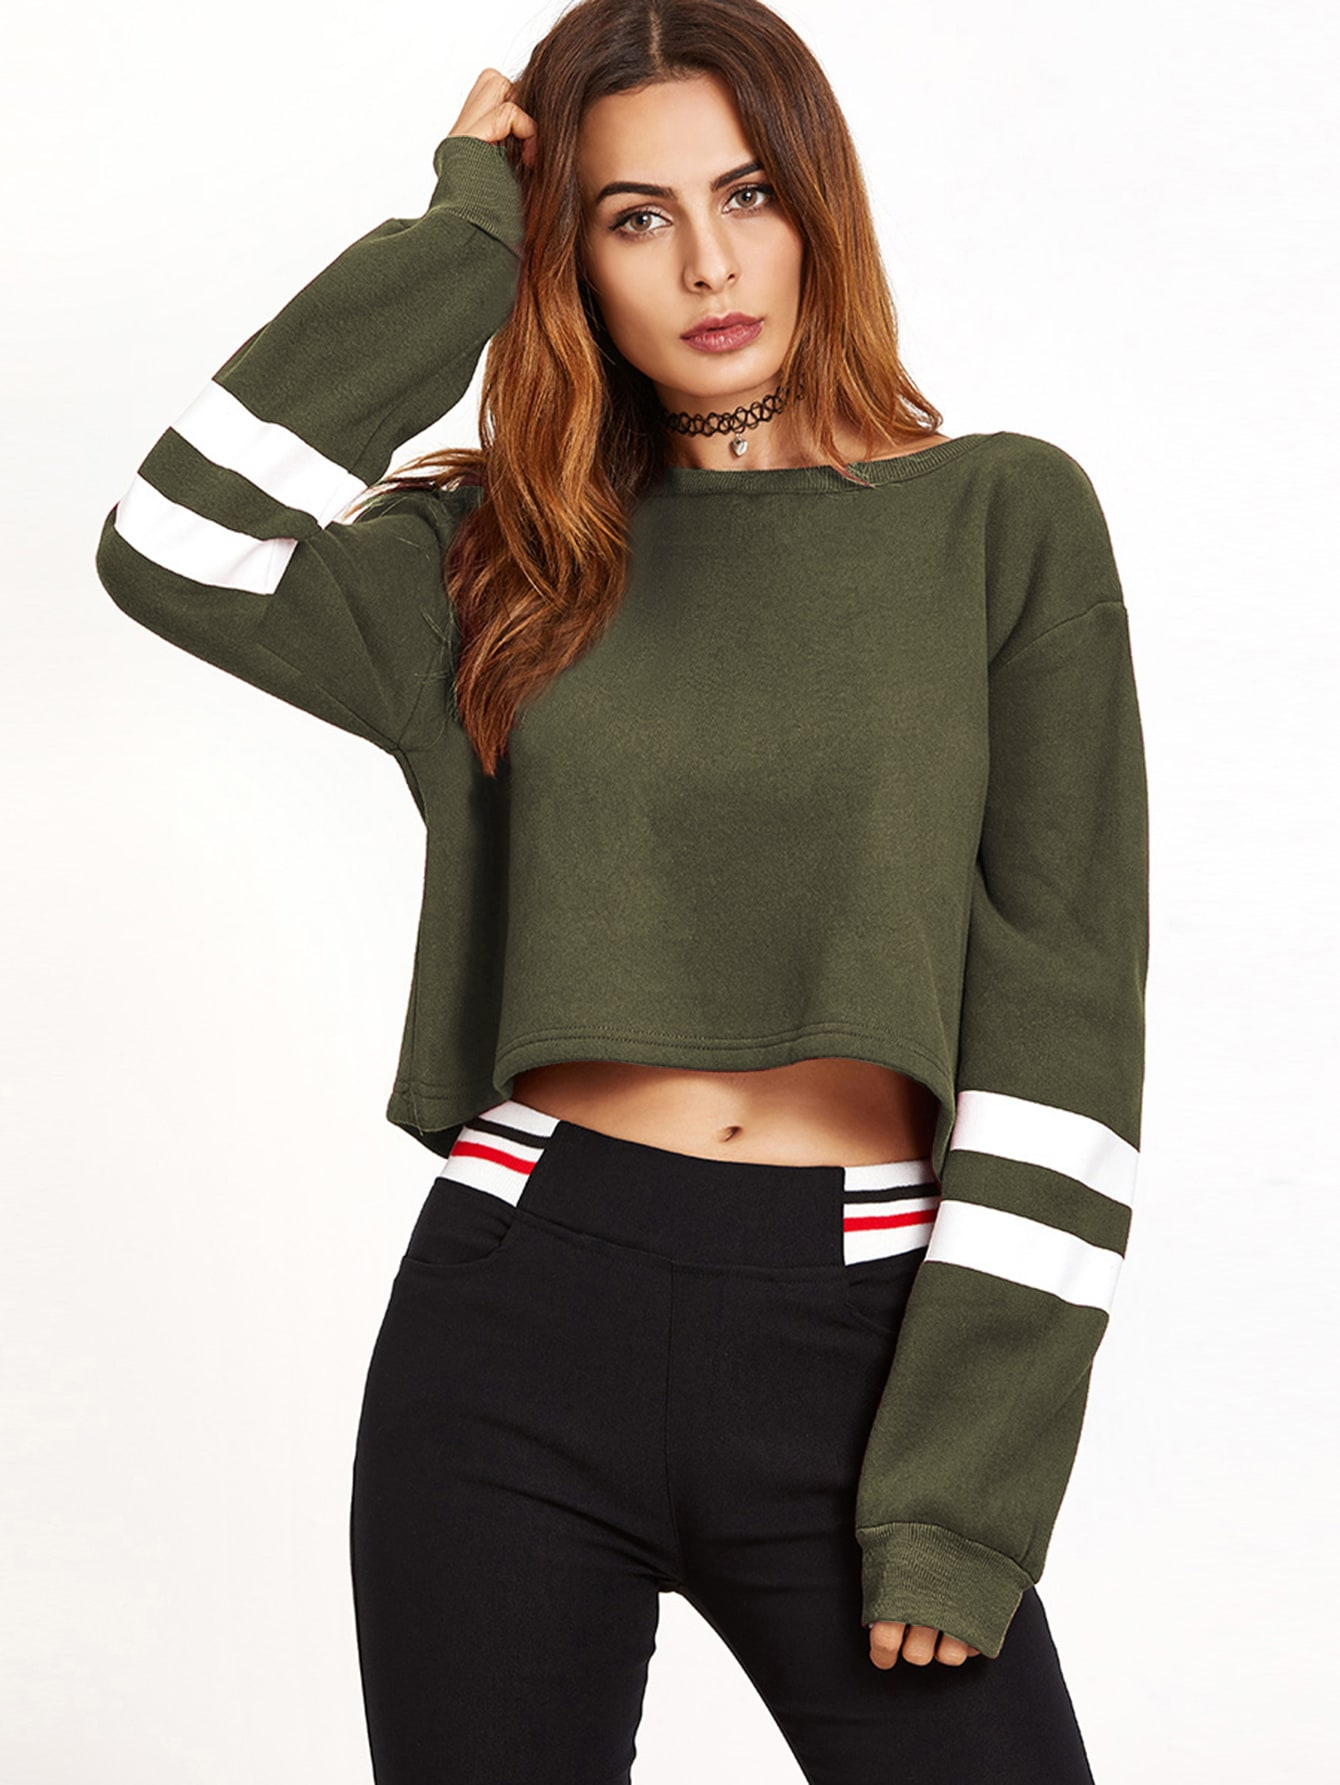 Army Green Drop Shoulder Varsity Striped Crop SweatshirtArmy Green Drop Shoulder Varsity Striped Crop Sweatshirt<br><br>color: Green<br>size: one-size